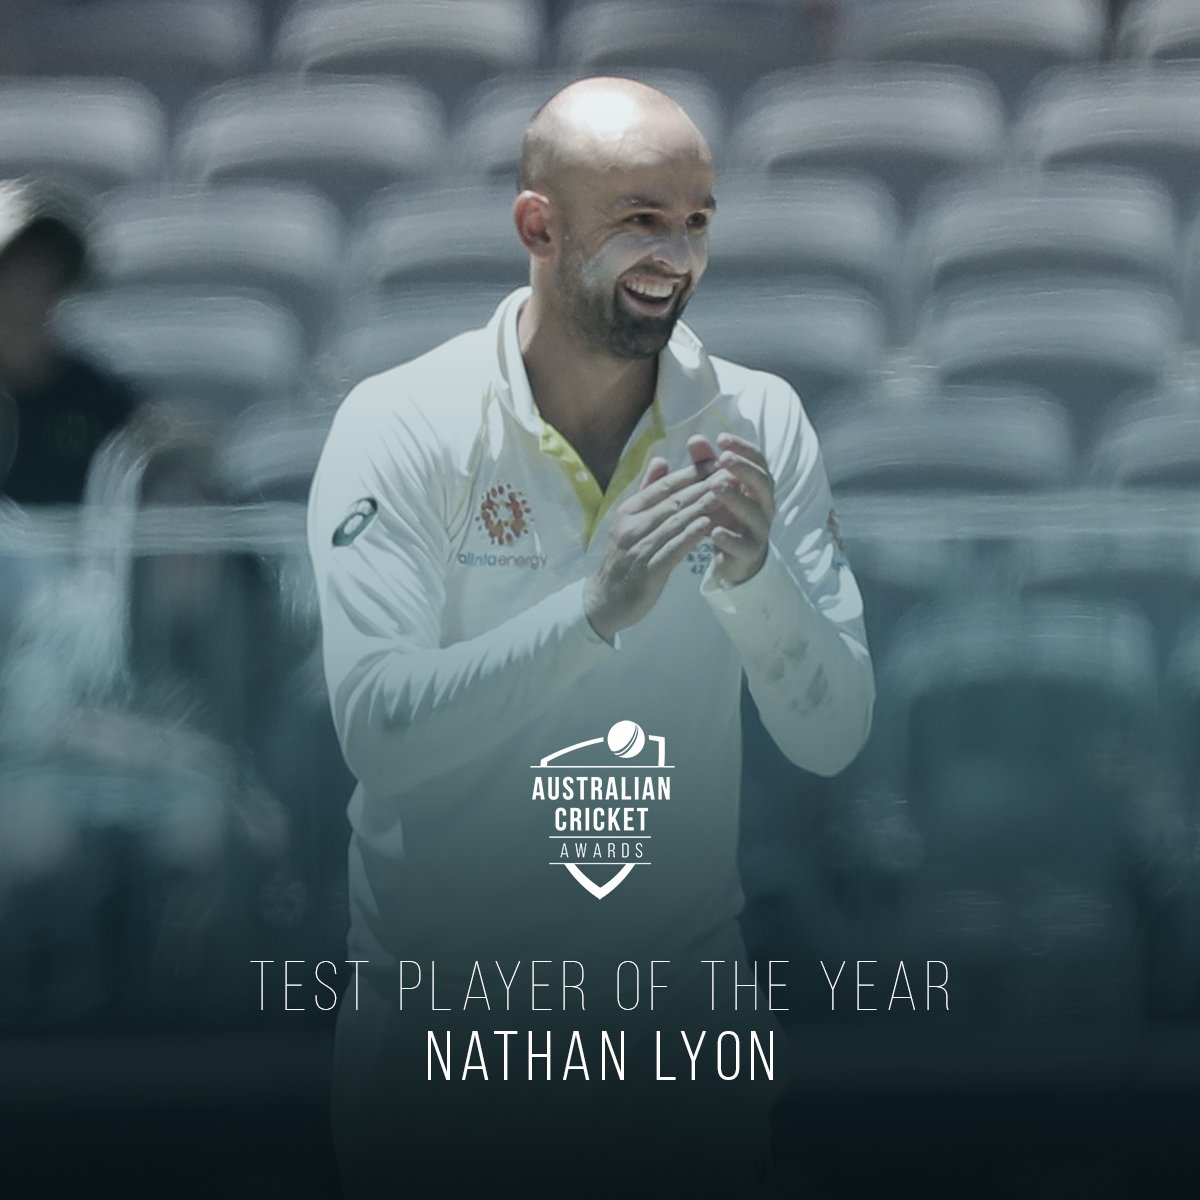 The  doing  things.  Nathan Lyon is the 2018 Test Player of the Year #AusCricketAwards <br>http://pic.twitter.com/nQO4tZl629